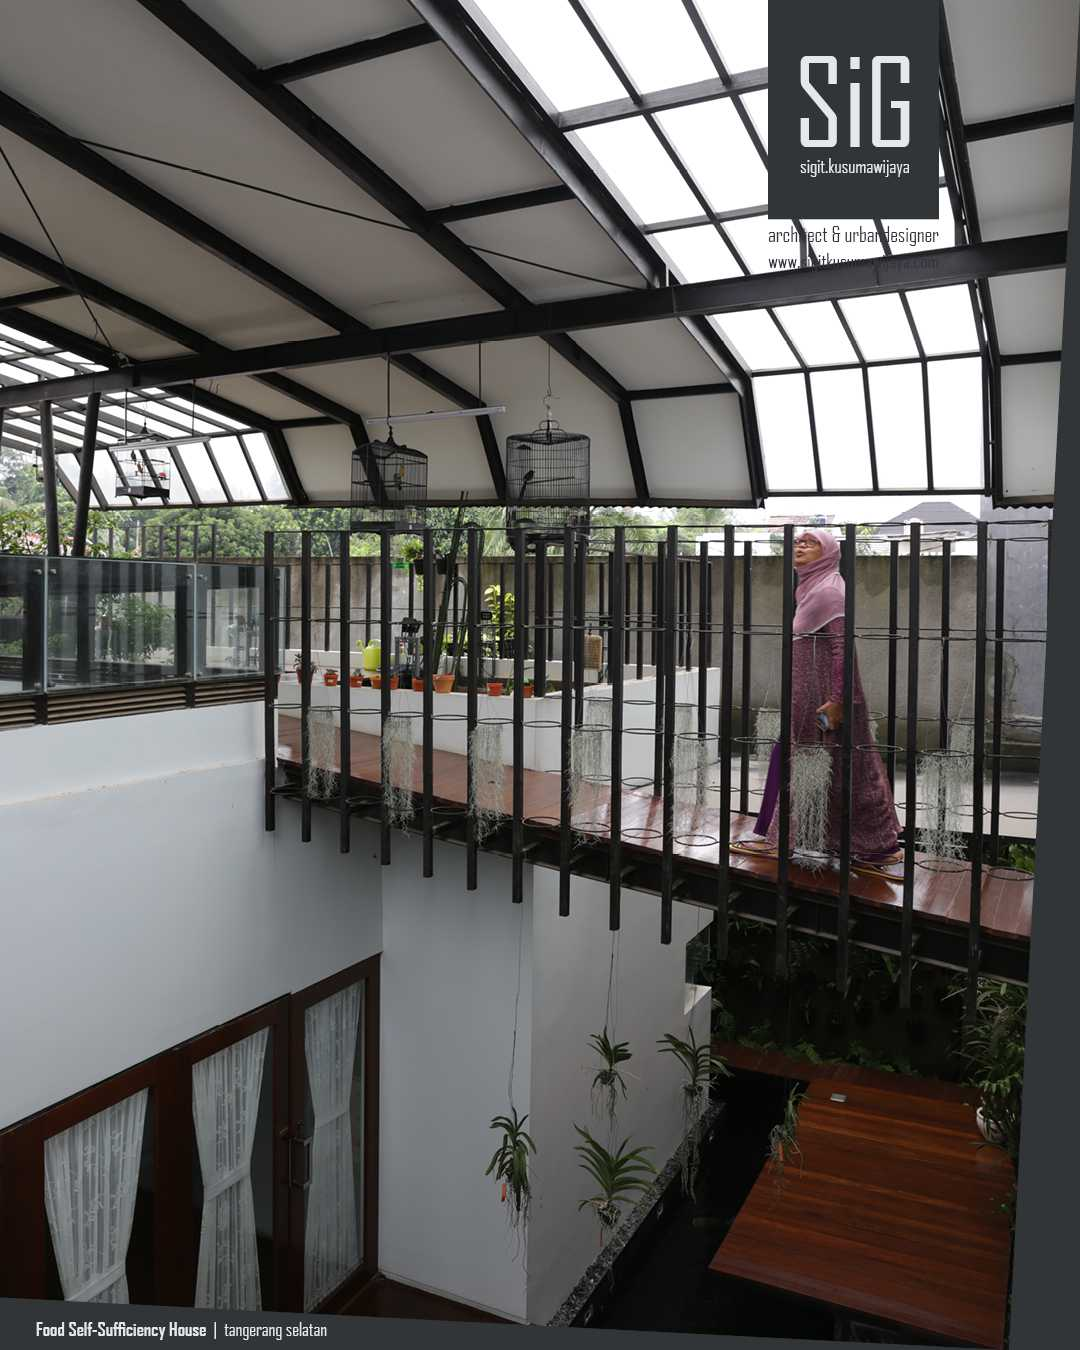 Sigit.kusumawijaya | Architect & Urbandesigner Rumah Kebun Mandiri Pangan (Food Self-Sufficiency House) Kota Tgr. Sel., Kota Tangerang Selatan, Banten, Indonesia Kota Tgr. Sel., Kota Tangerang Selatan, Banten, Indonesia Sigitkusumawijaya-Architect-Urbandesigner-Rumah-Kebun-Mandiri-Pangan-Food-Self-Sufficiency-House   55015